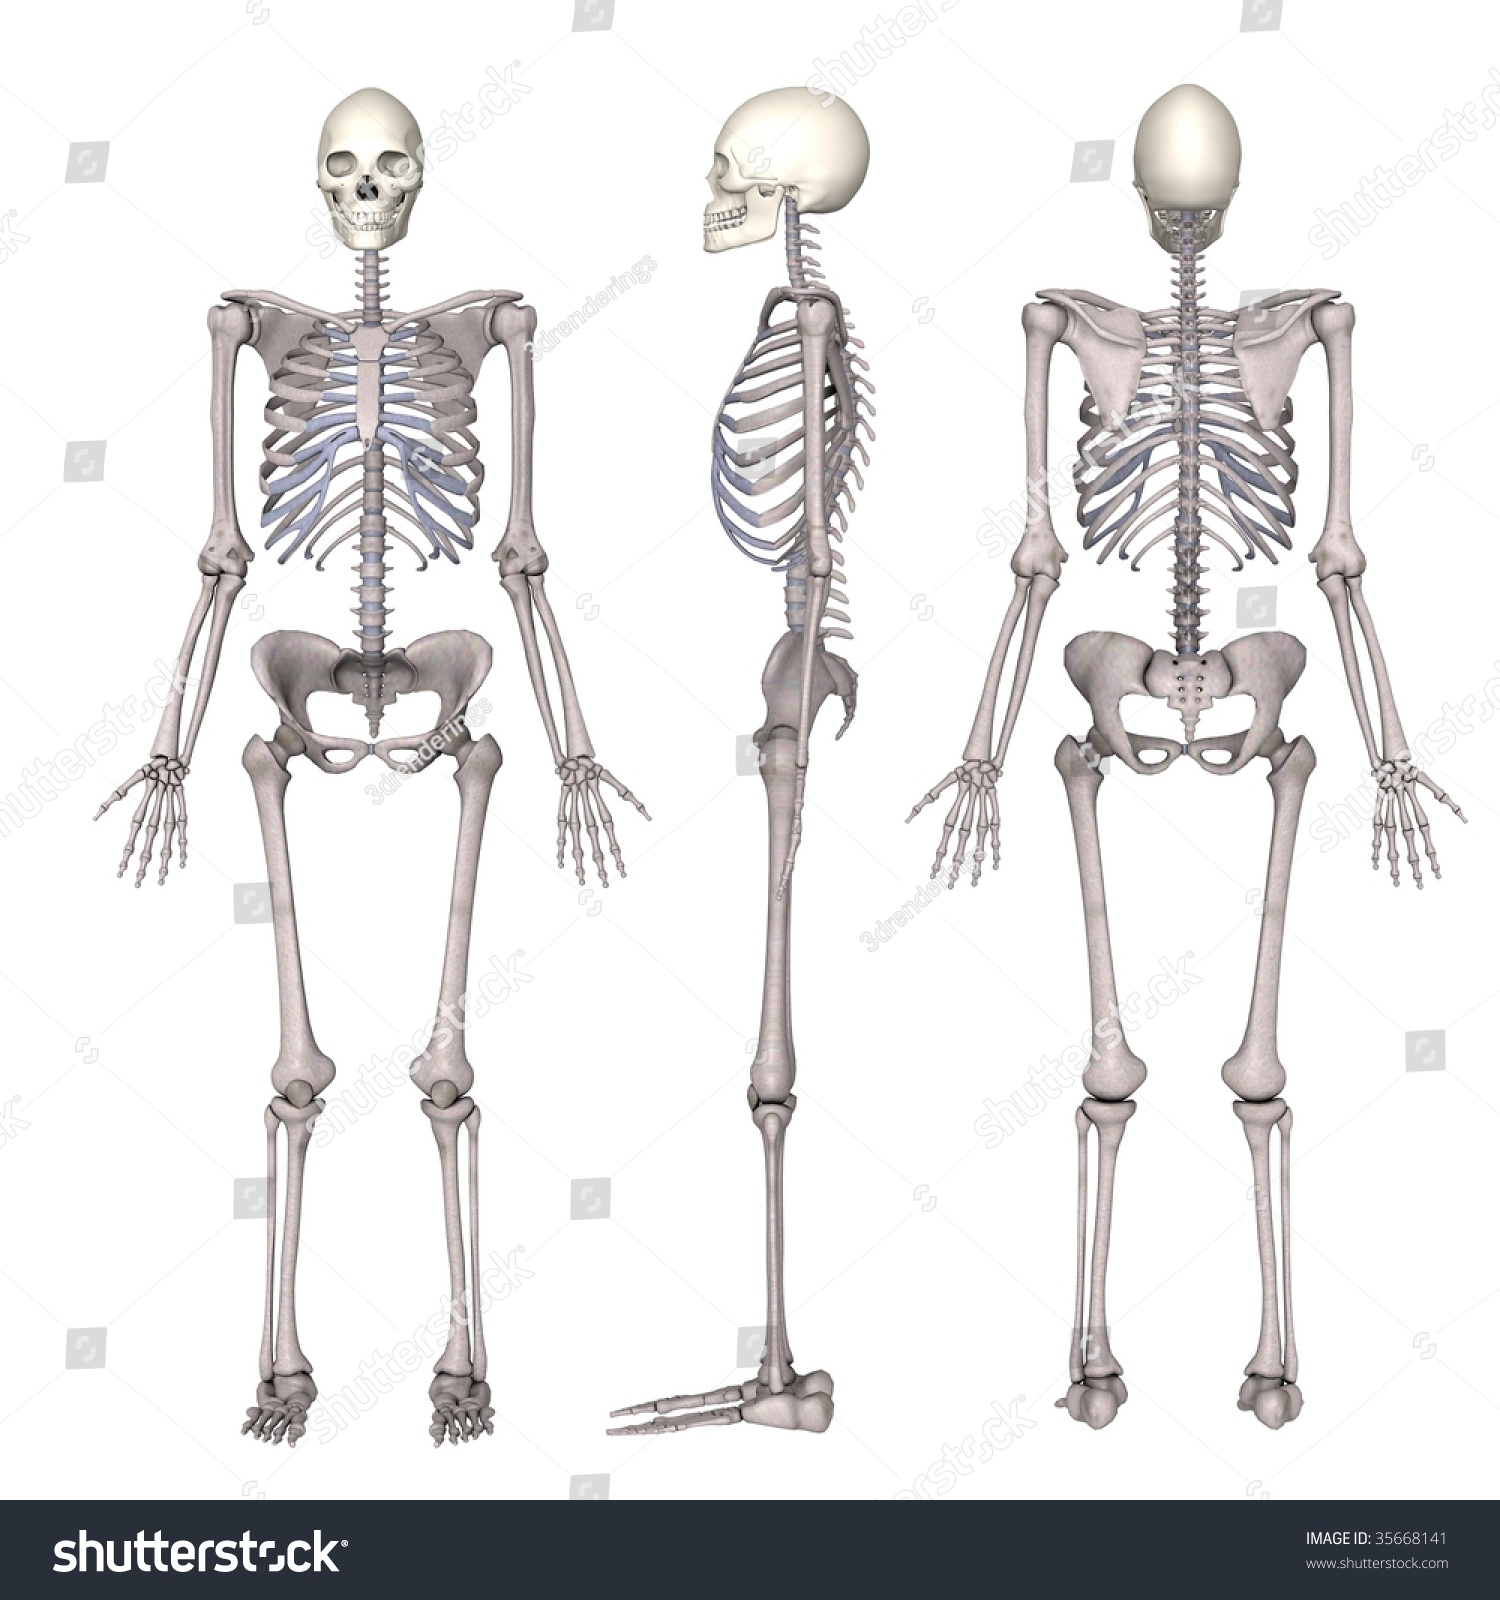 skeletal system The skeletal system contains all the bones and joints in the human body the skeletal system also provides support and protection for the soft tissue that makes up the rest of the body.